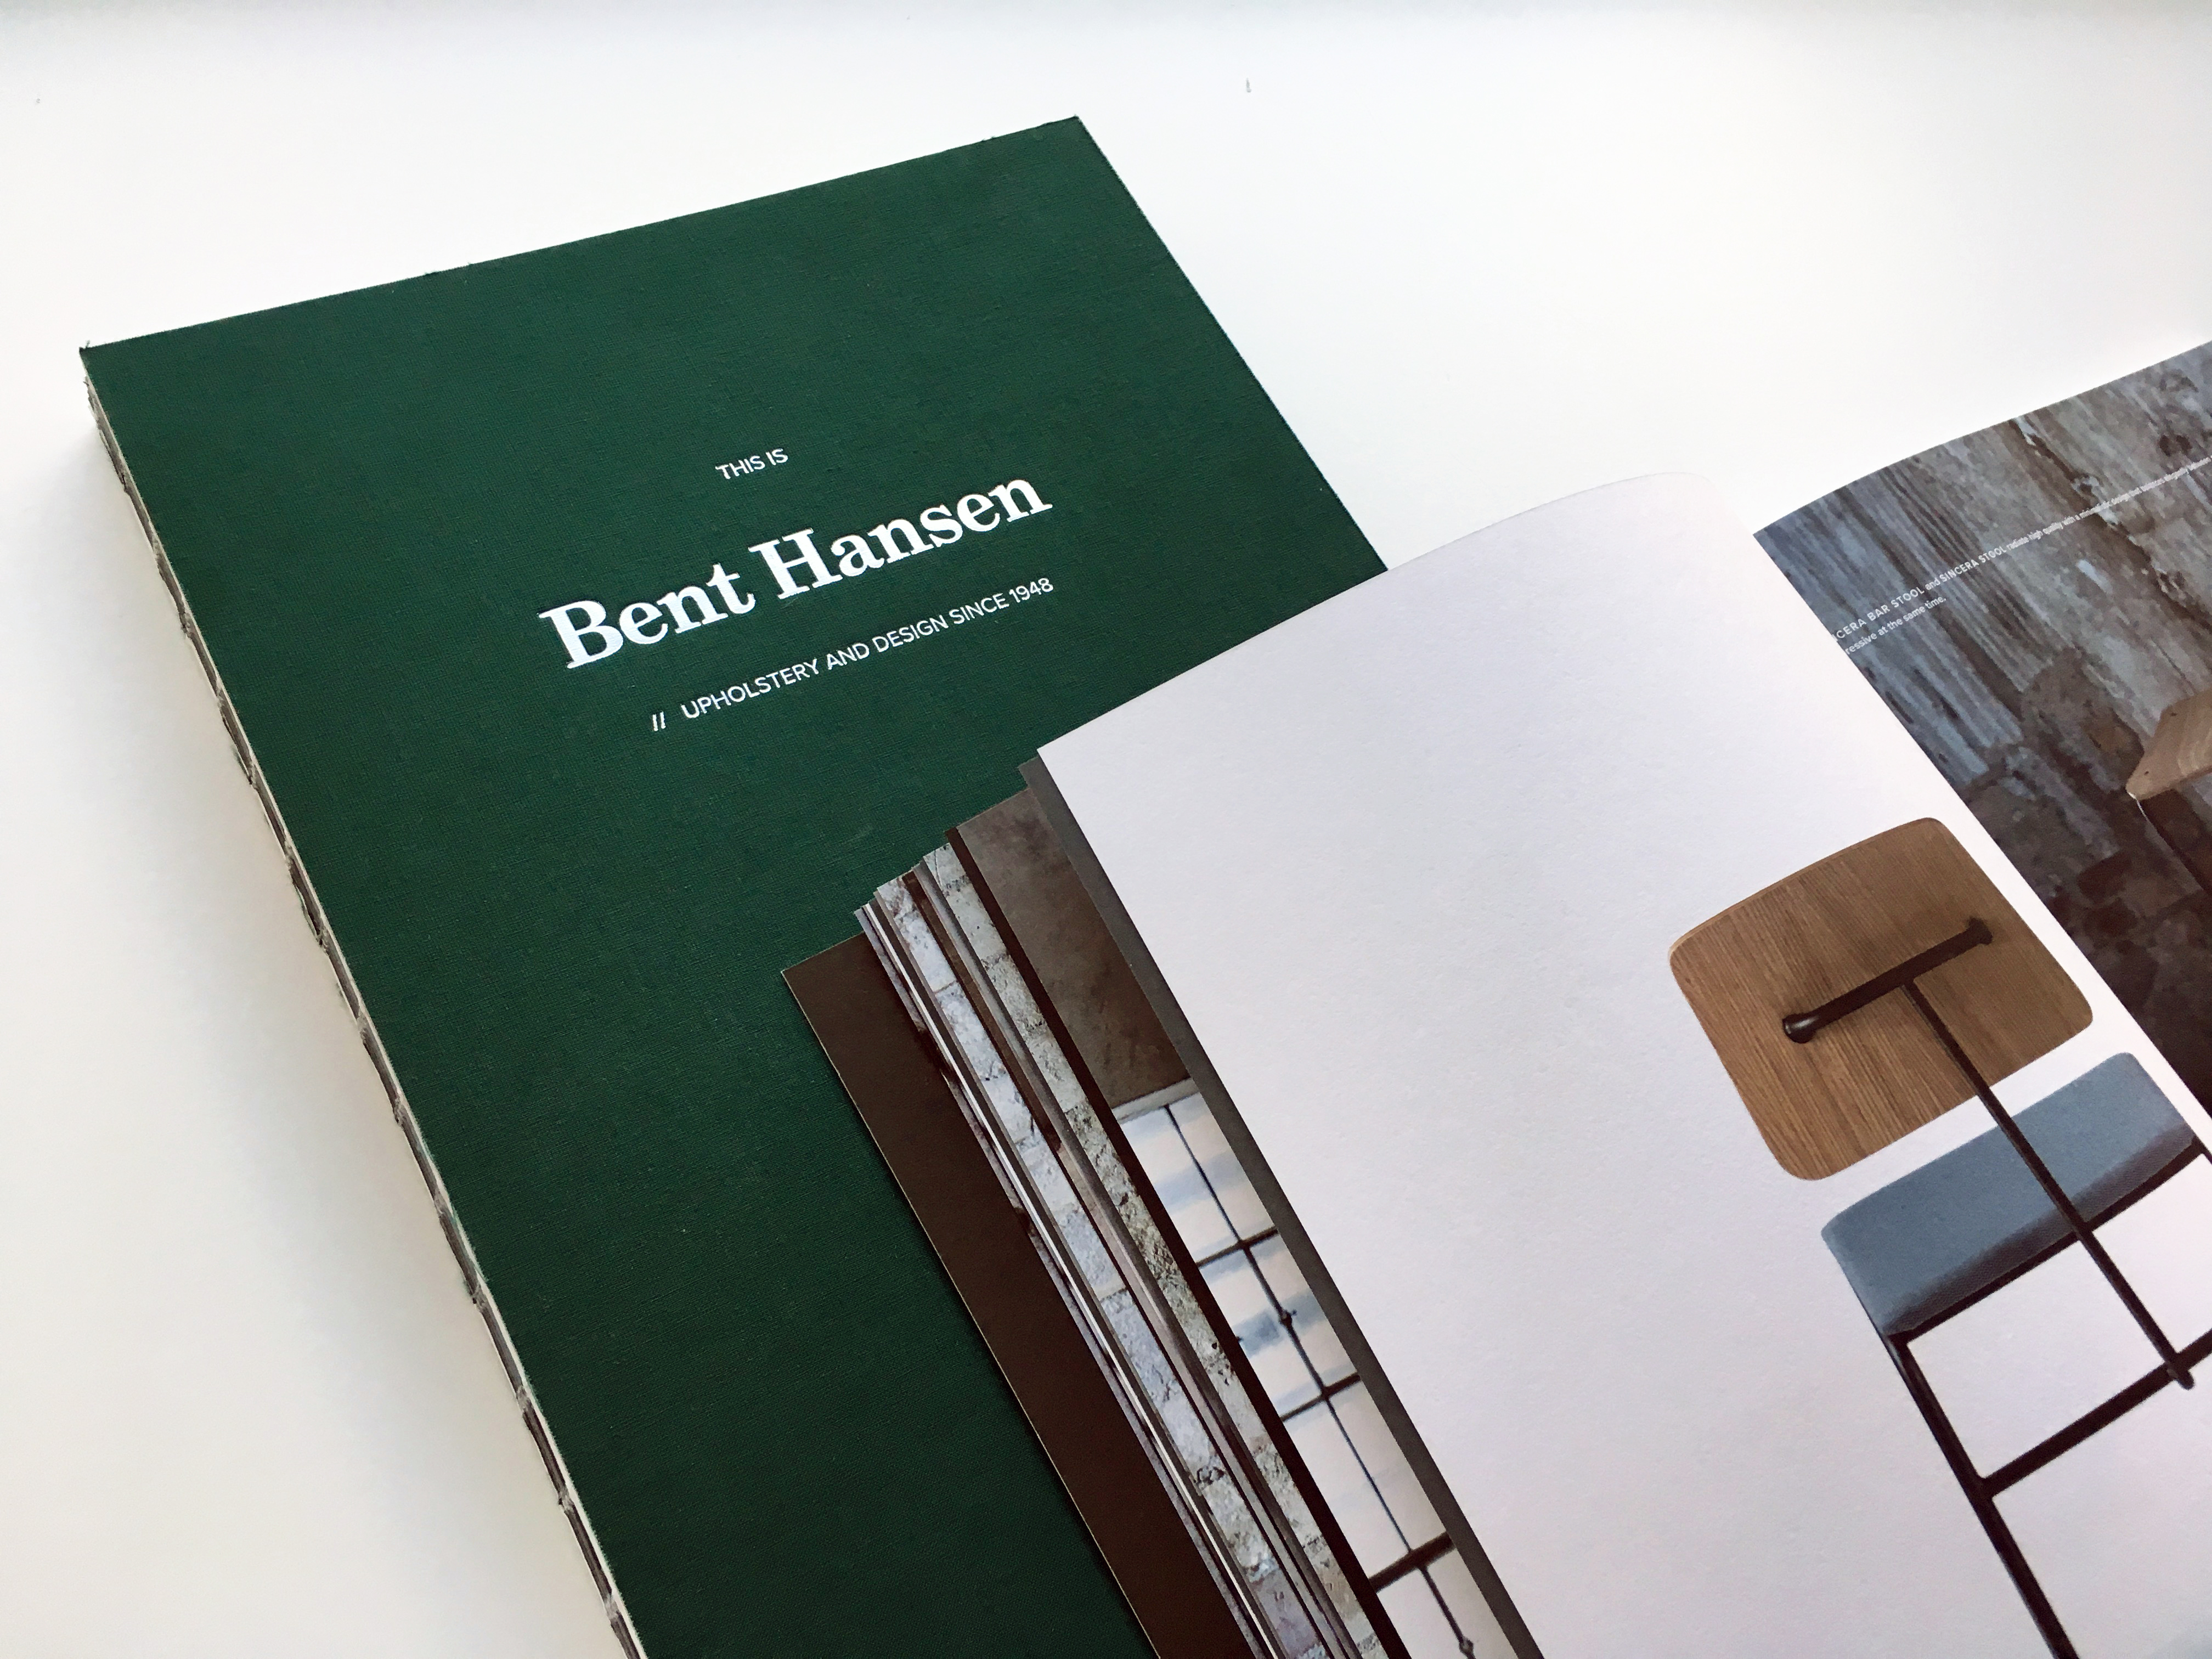 BENT HANSEN INTERIOR COLLECTION